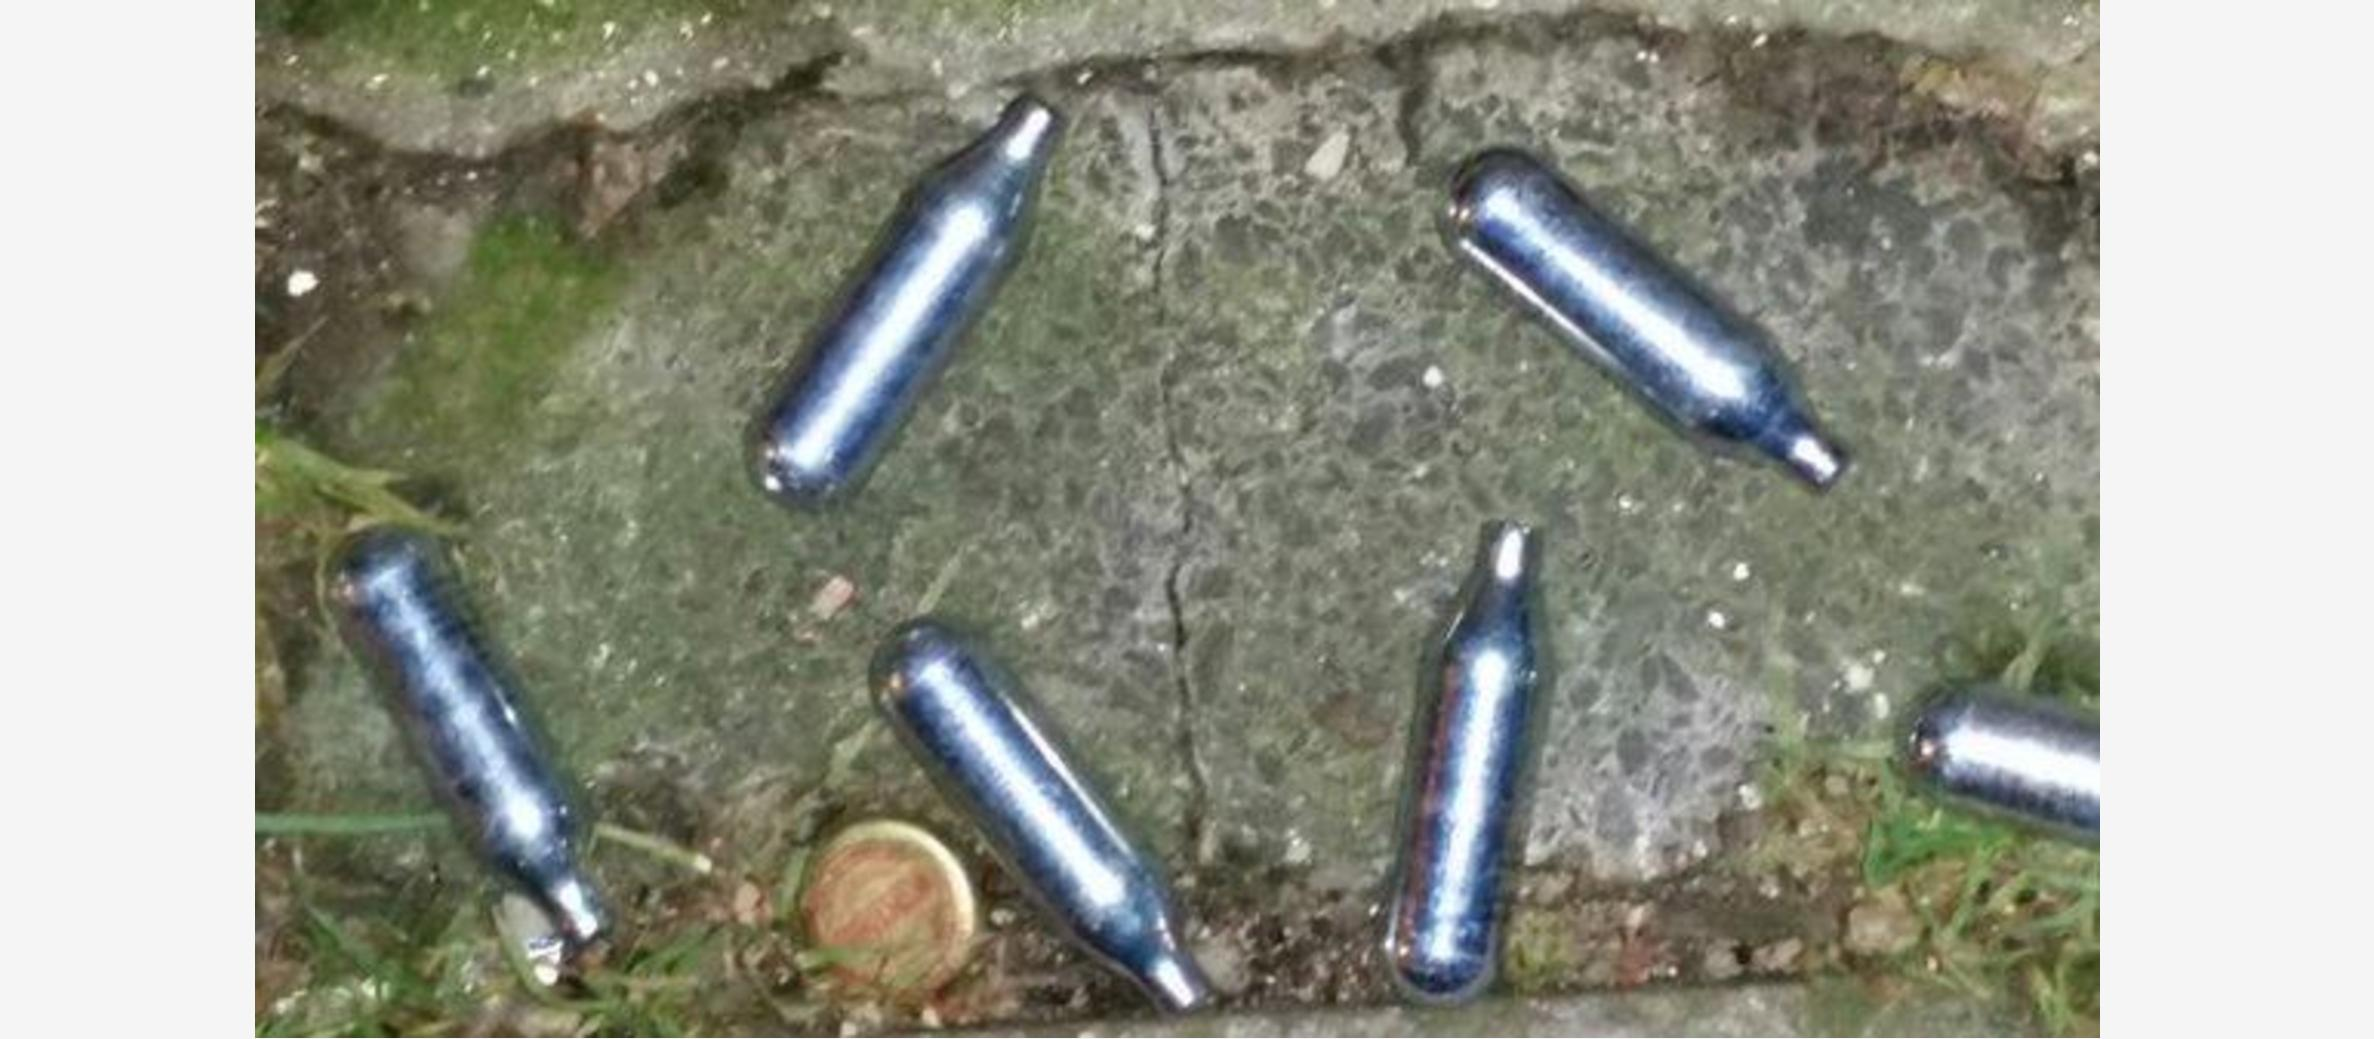 Jewish shoppers 'attacked with gas canisters' in Tottenham